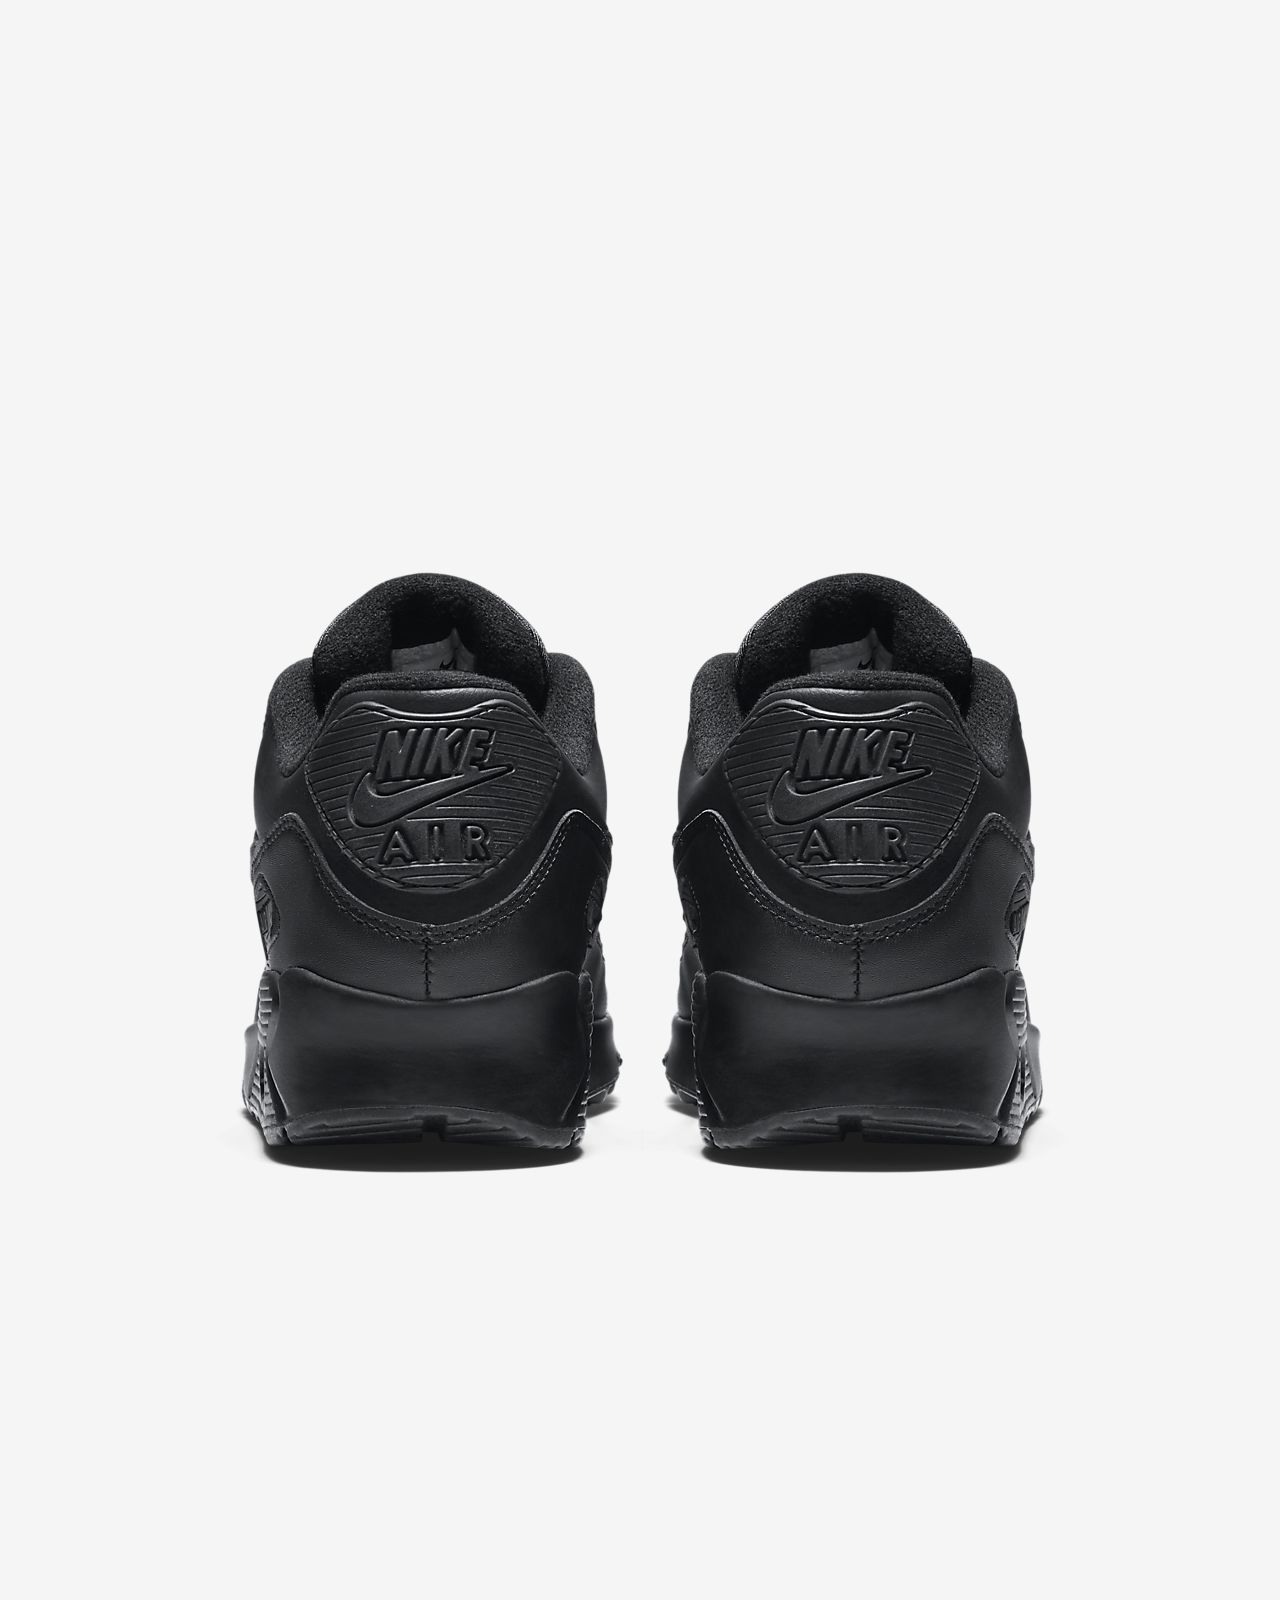 nike air max 90 leather black review